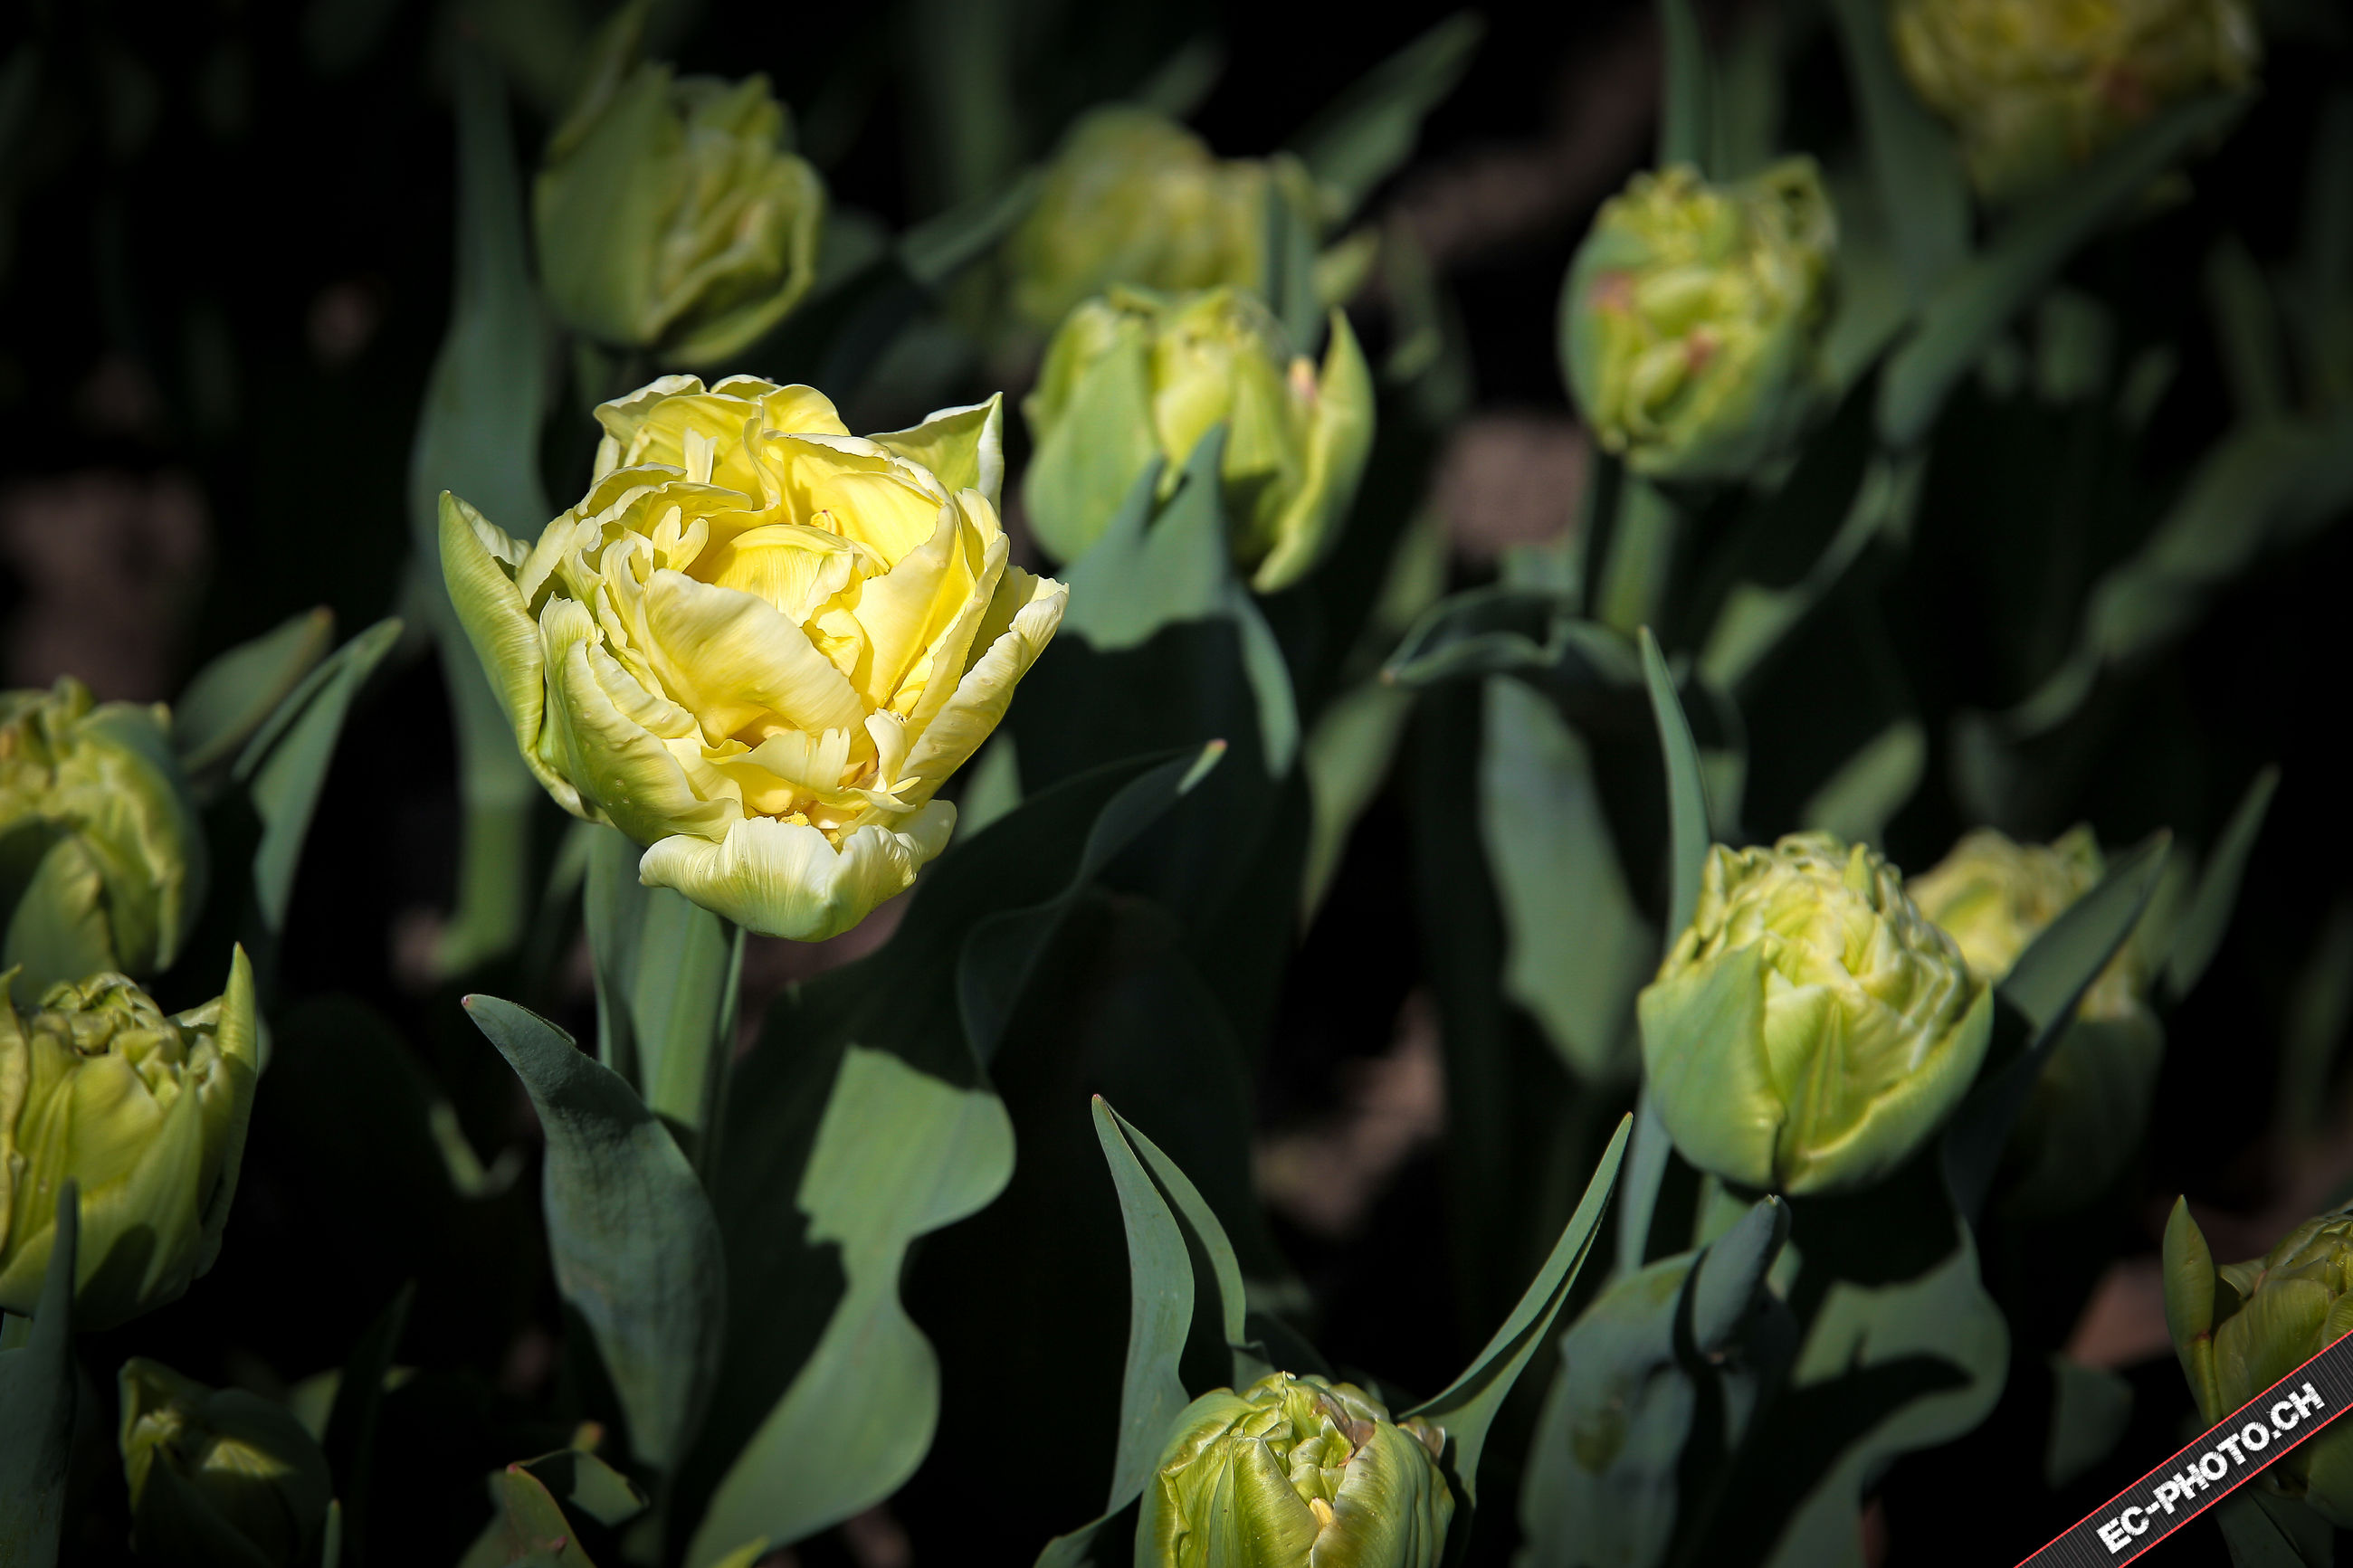 flower, yellow, freshness, petal, fragility, close-up, growth, flower head, beauty in nature, plant, focus on foreground, nature, leaf, blooming, bud, stem, outdoors, no people, day, in bloom